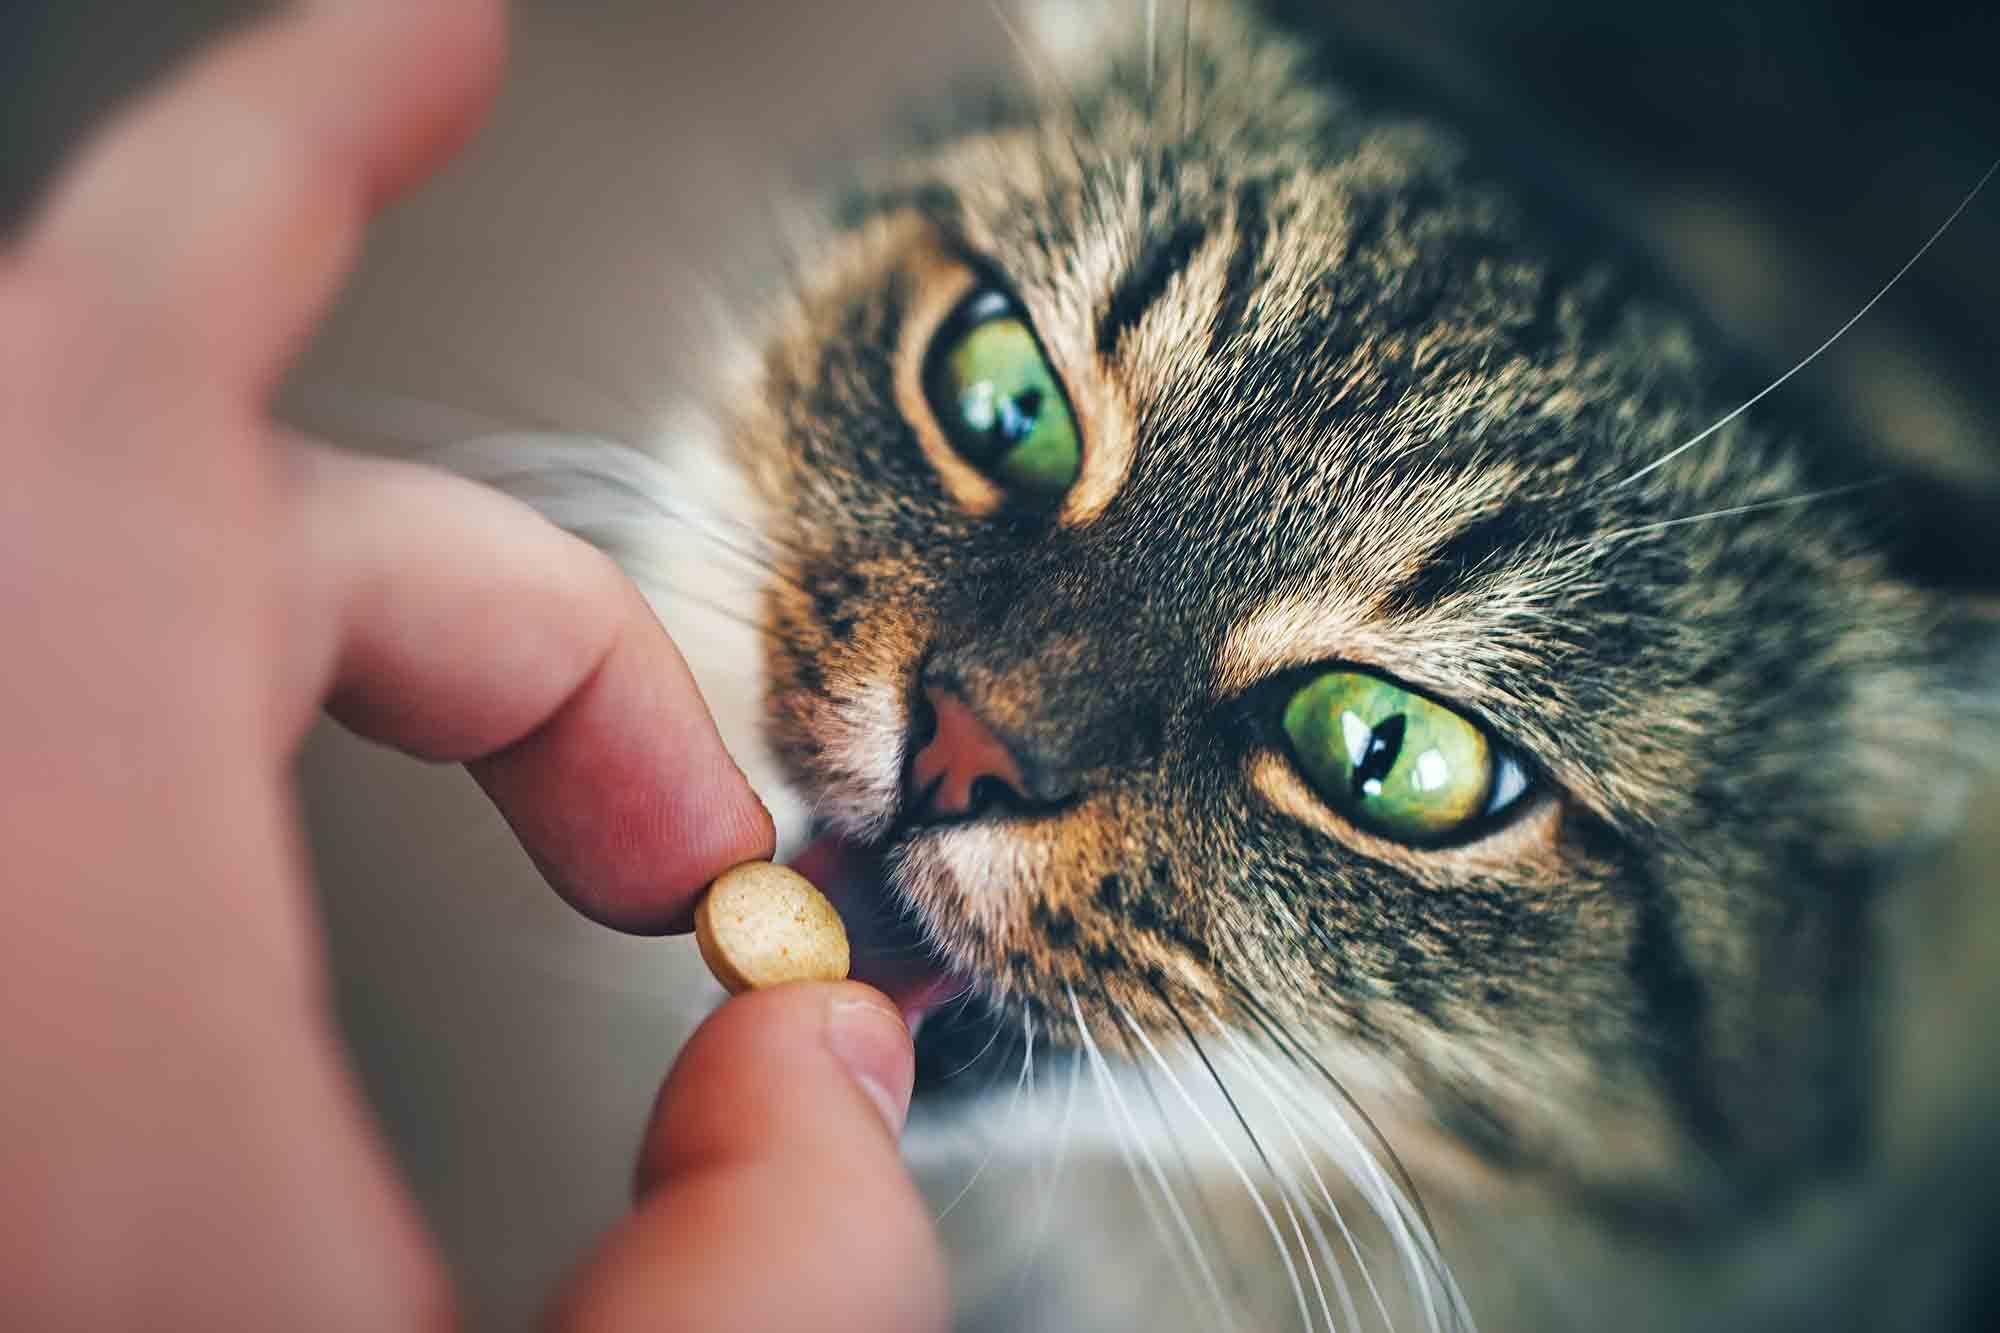 antibiotics in pets